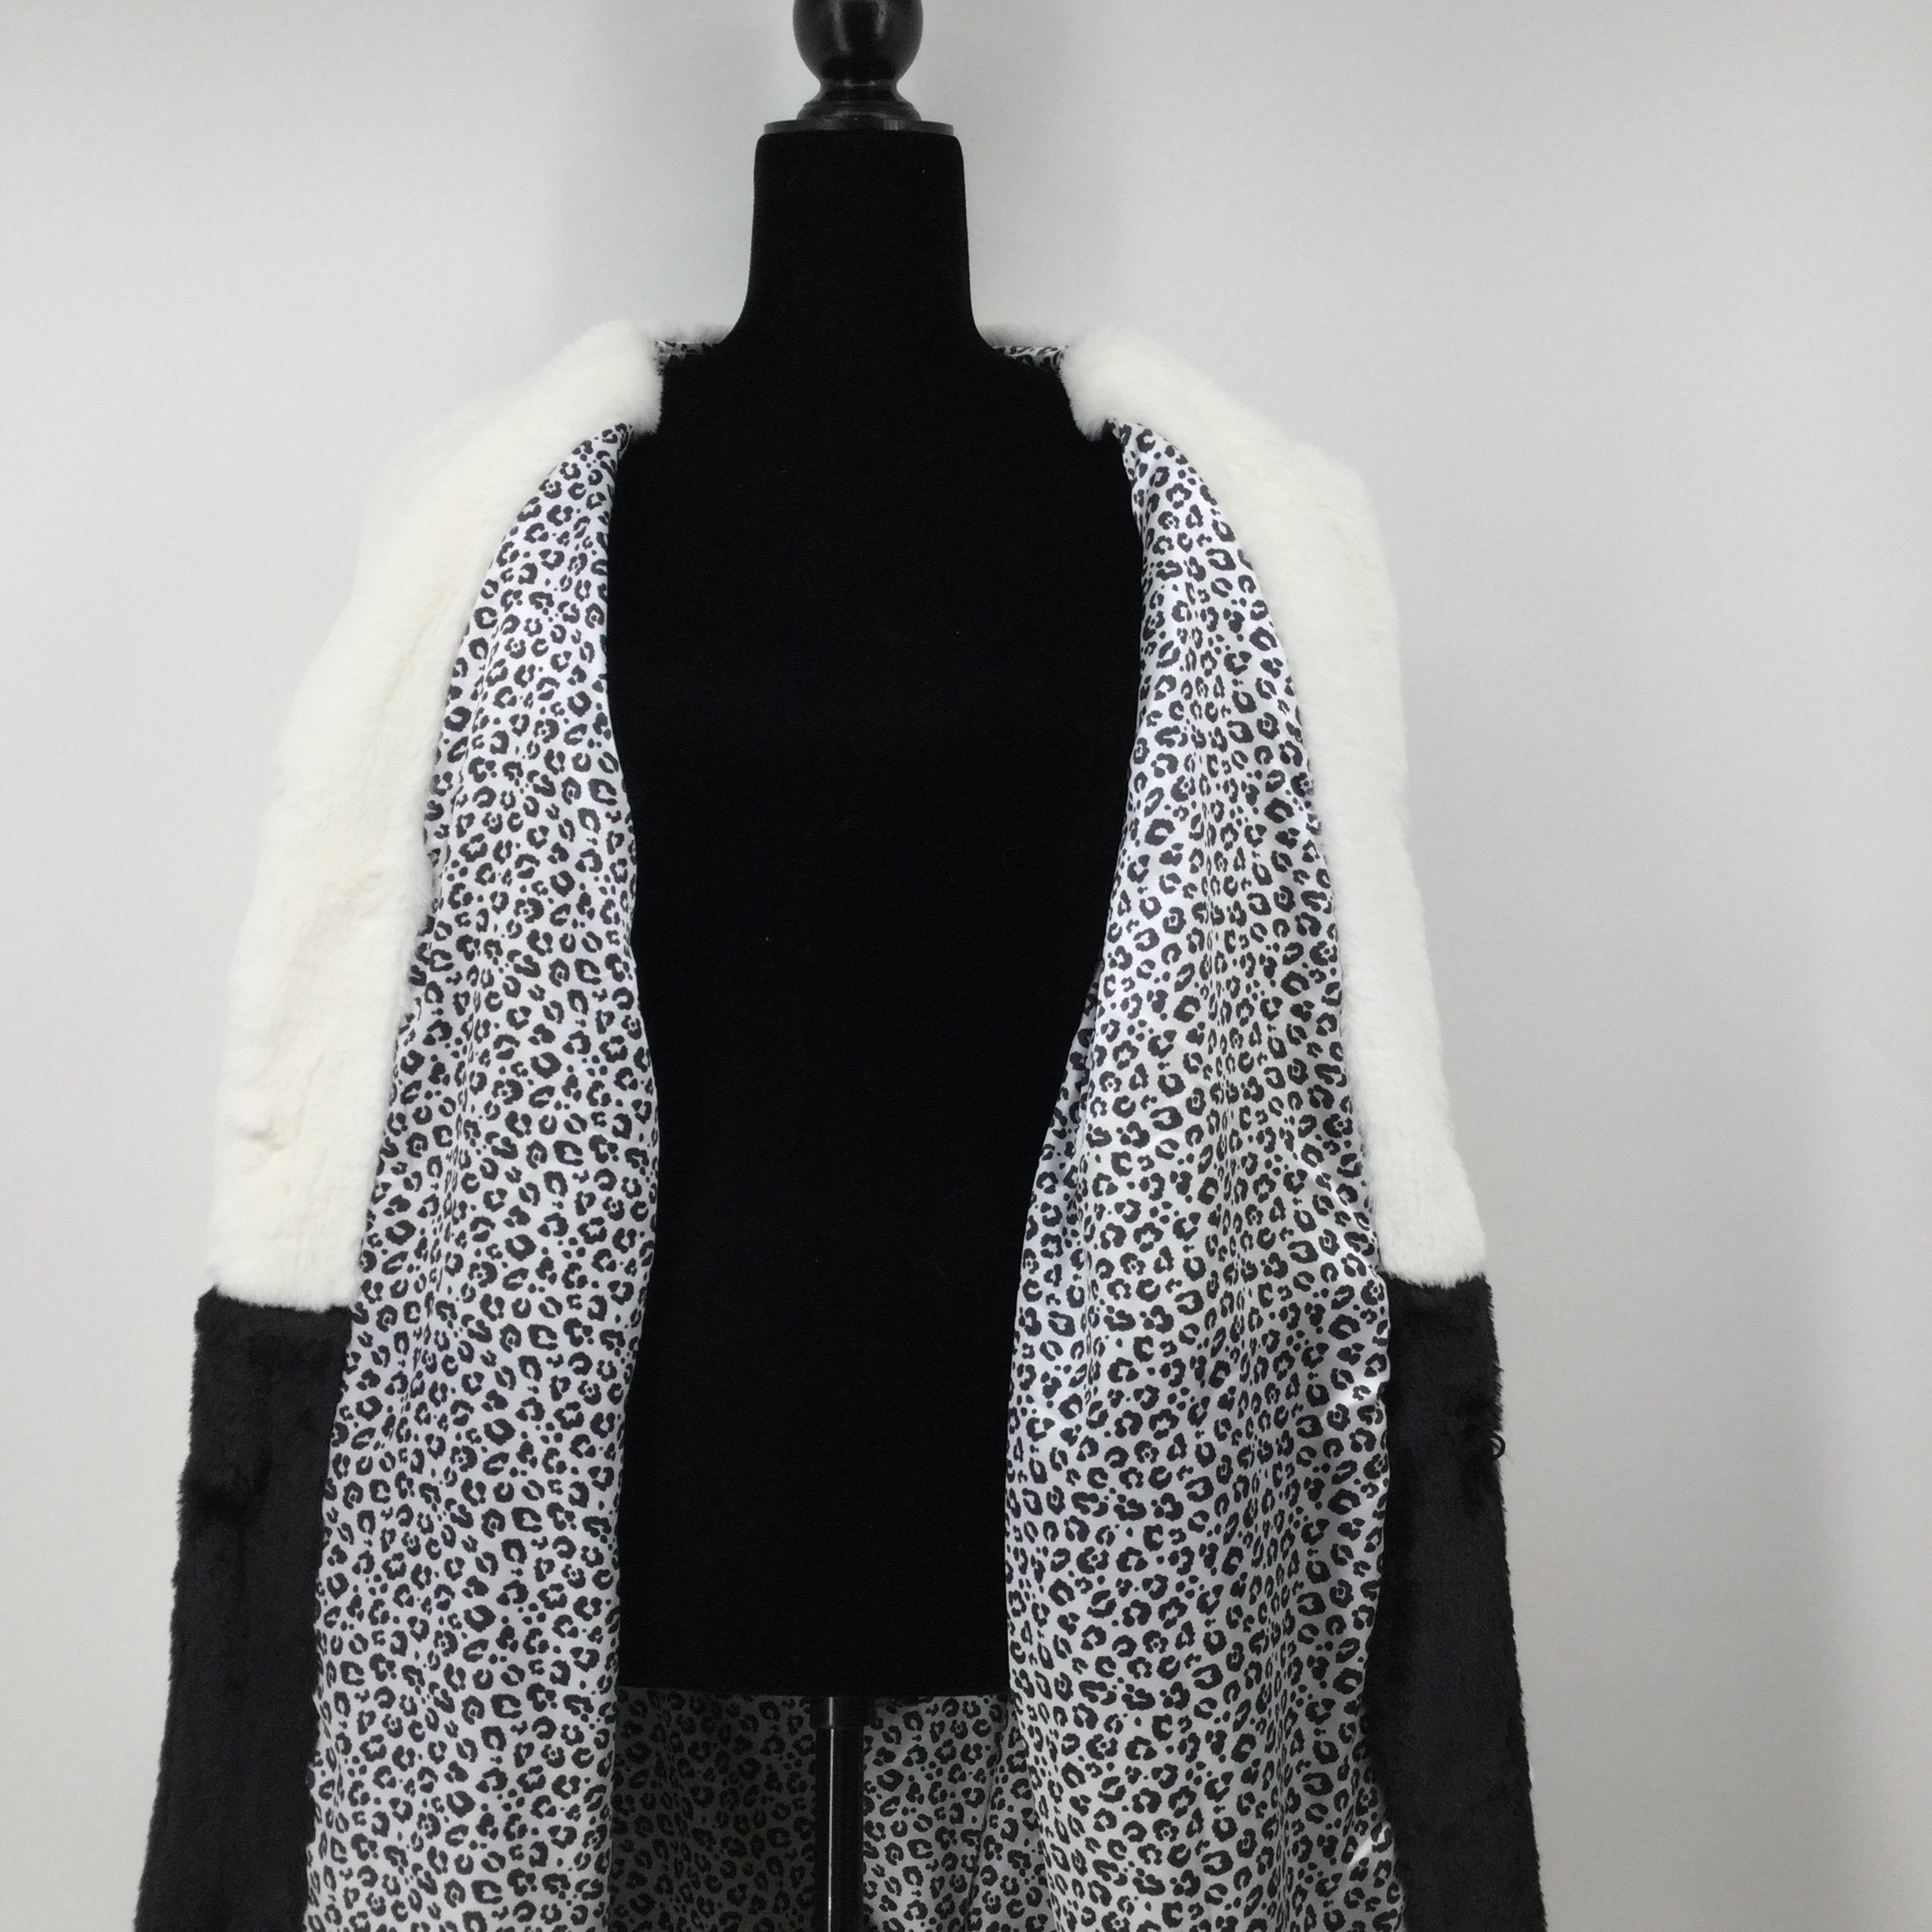 Fever Long Coat, Faux Fur, Black And Off White, Size XL - <P>THIS FEVER COAT IS FAUX FUR ON THE OUTSIDE WITH A LEOPARD PRINT ON THE INSIDE. THERE ARE FOUR BUTTONS DOWN THE FRONT. IT IS IN PERFECT CONDITION WITH THE ORIGINAL TAGS STILL ATTACHED.</P>